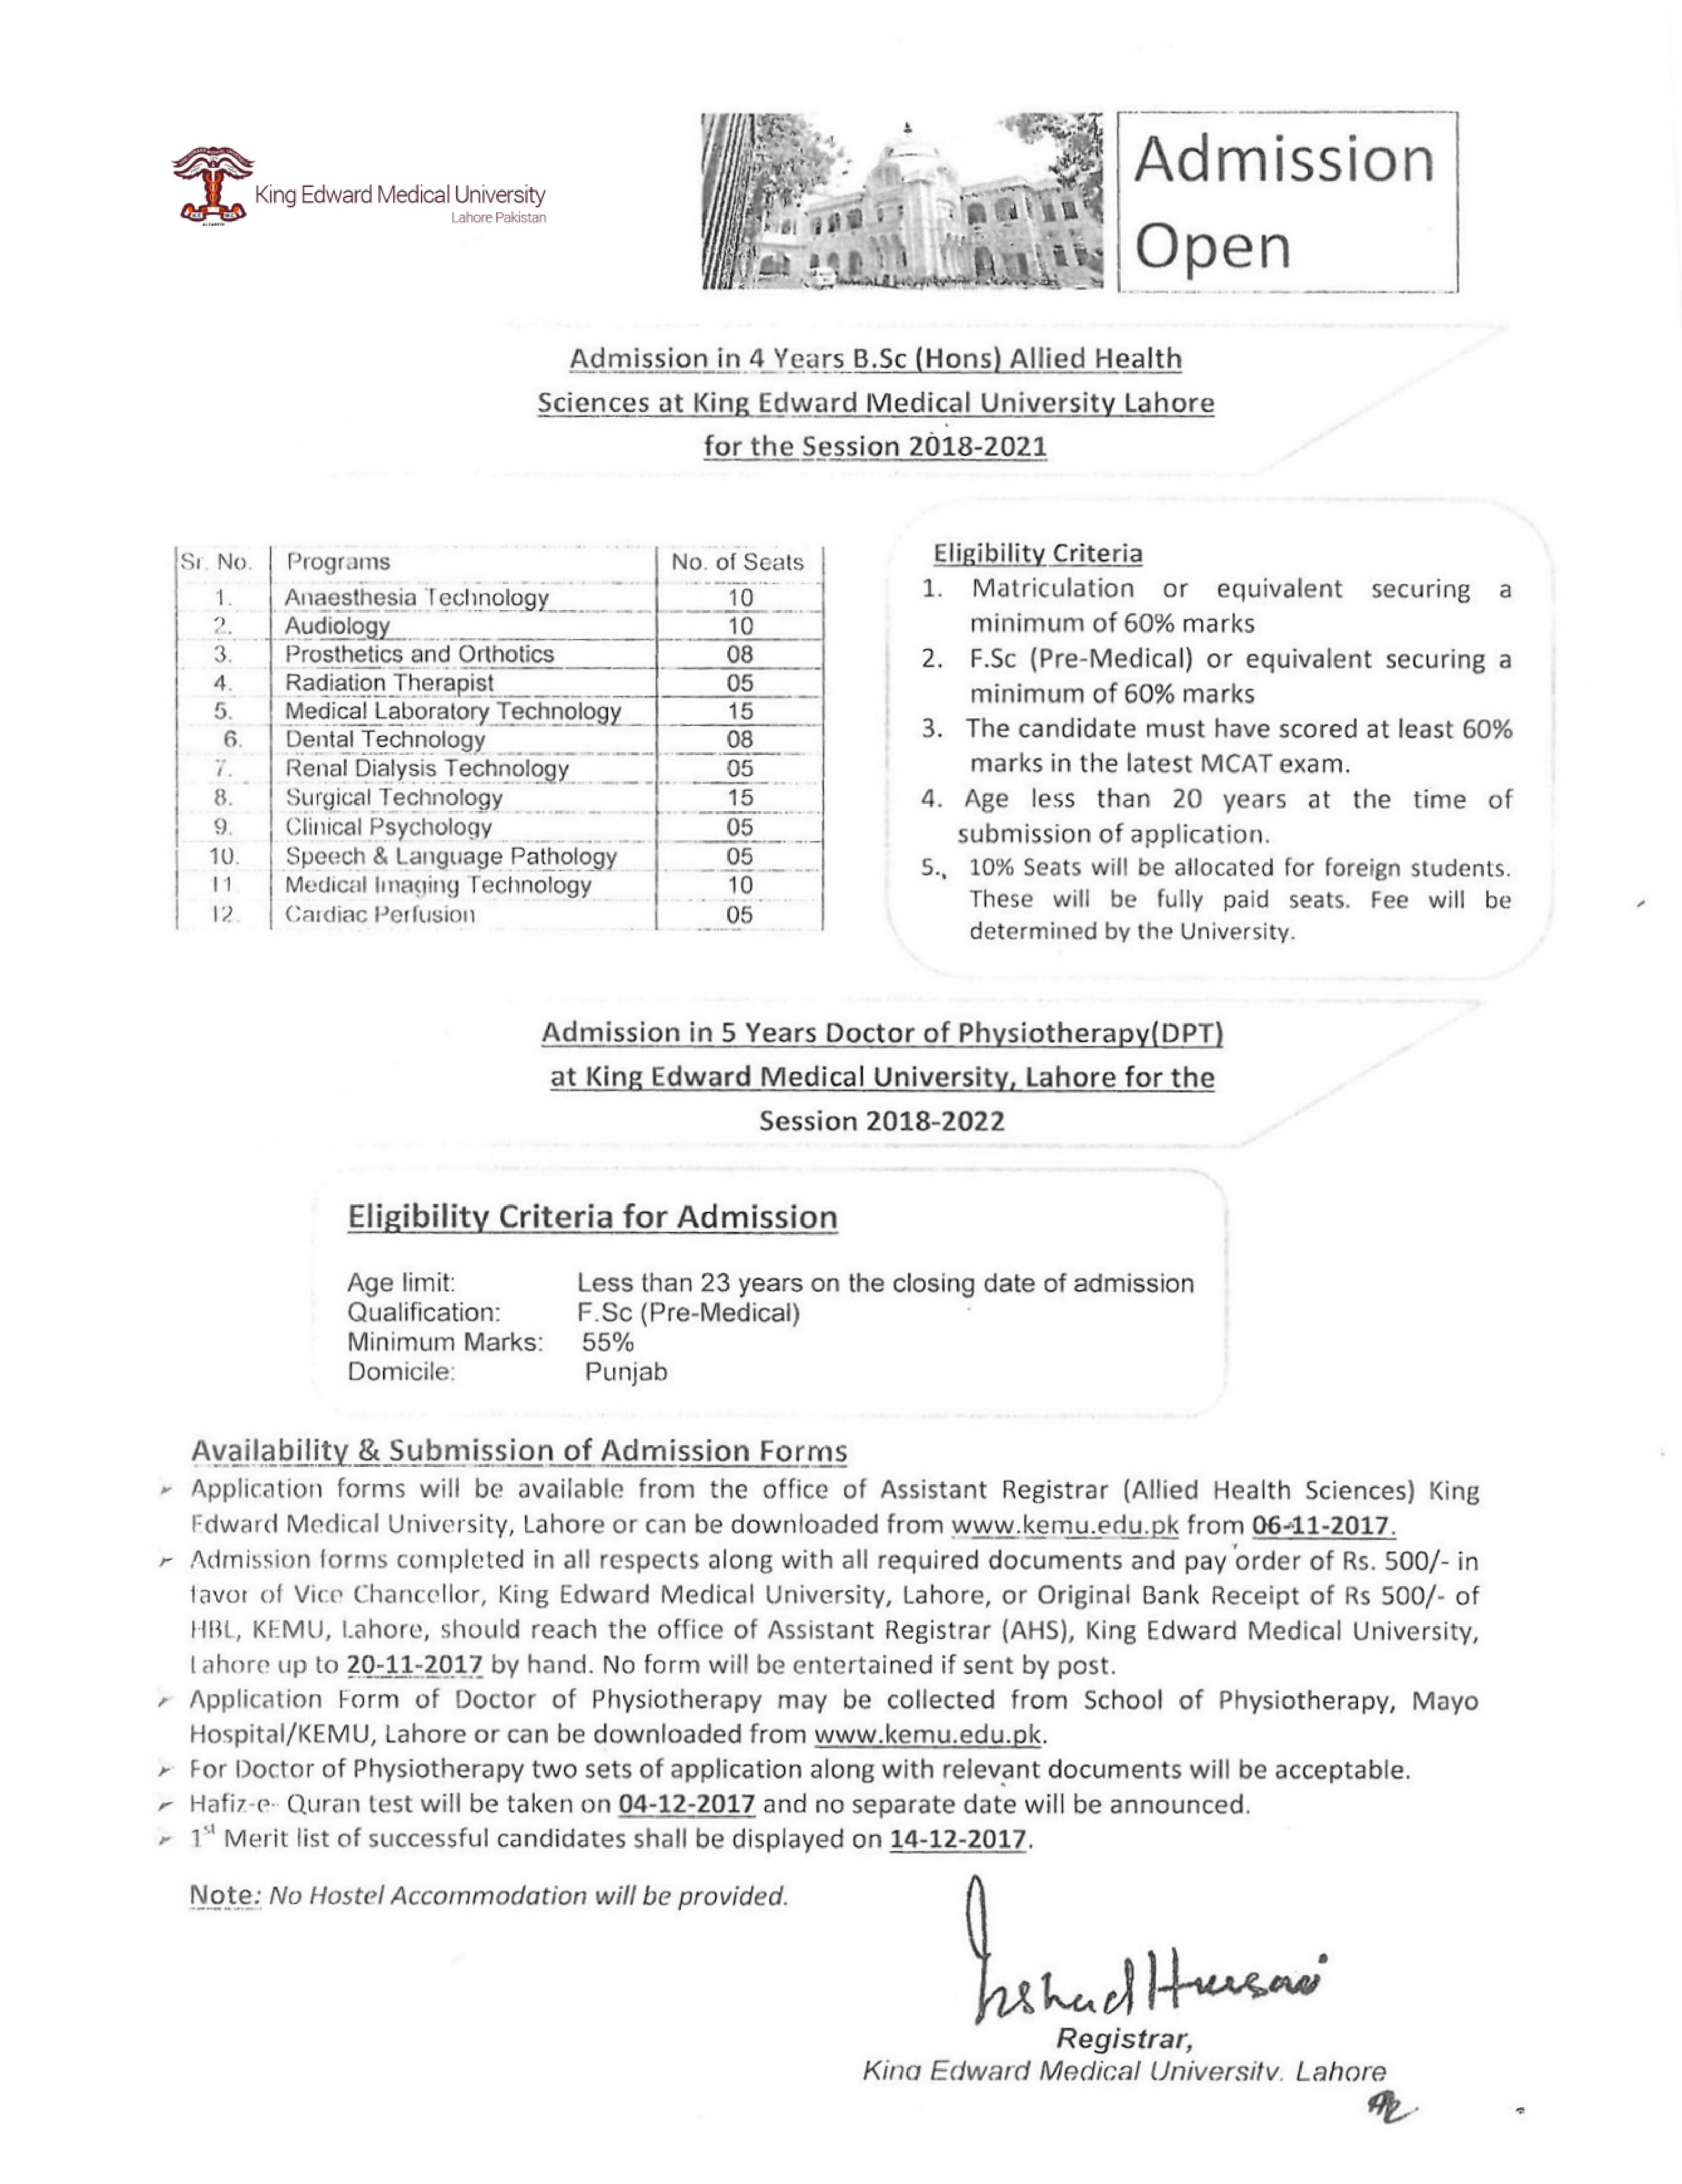 King Edward Medical University, Lahore – Important Dates for B.Sc (Hons) and DPT Admissions – Session 2018